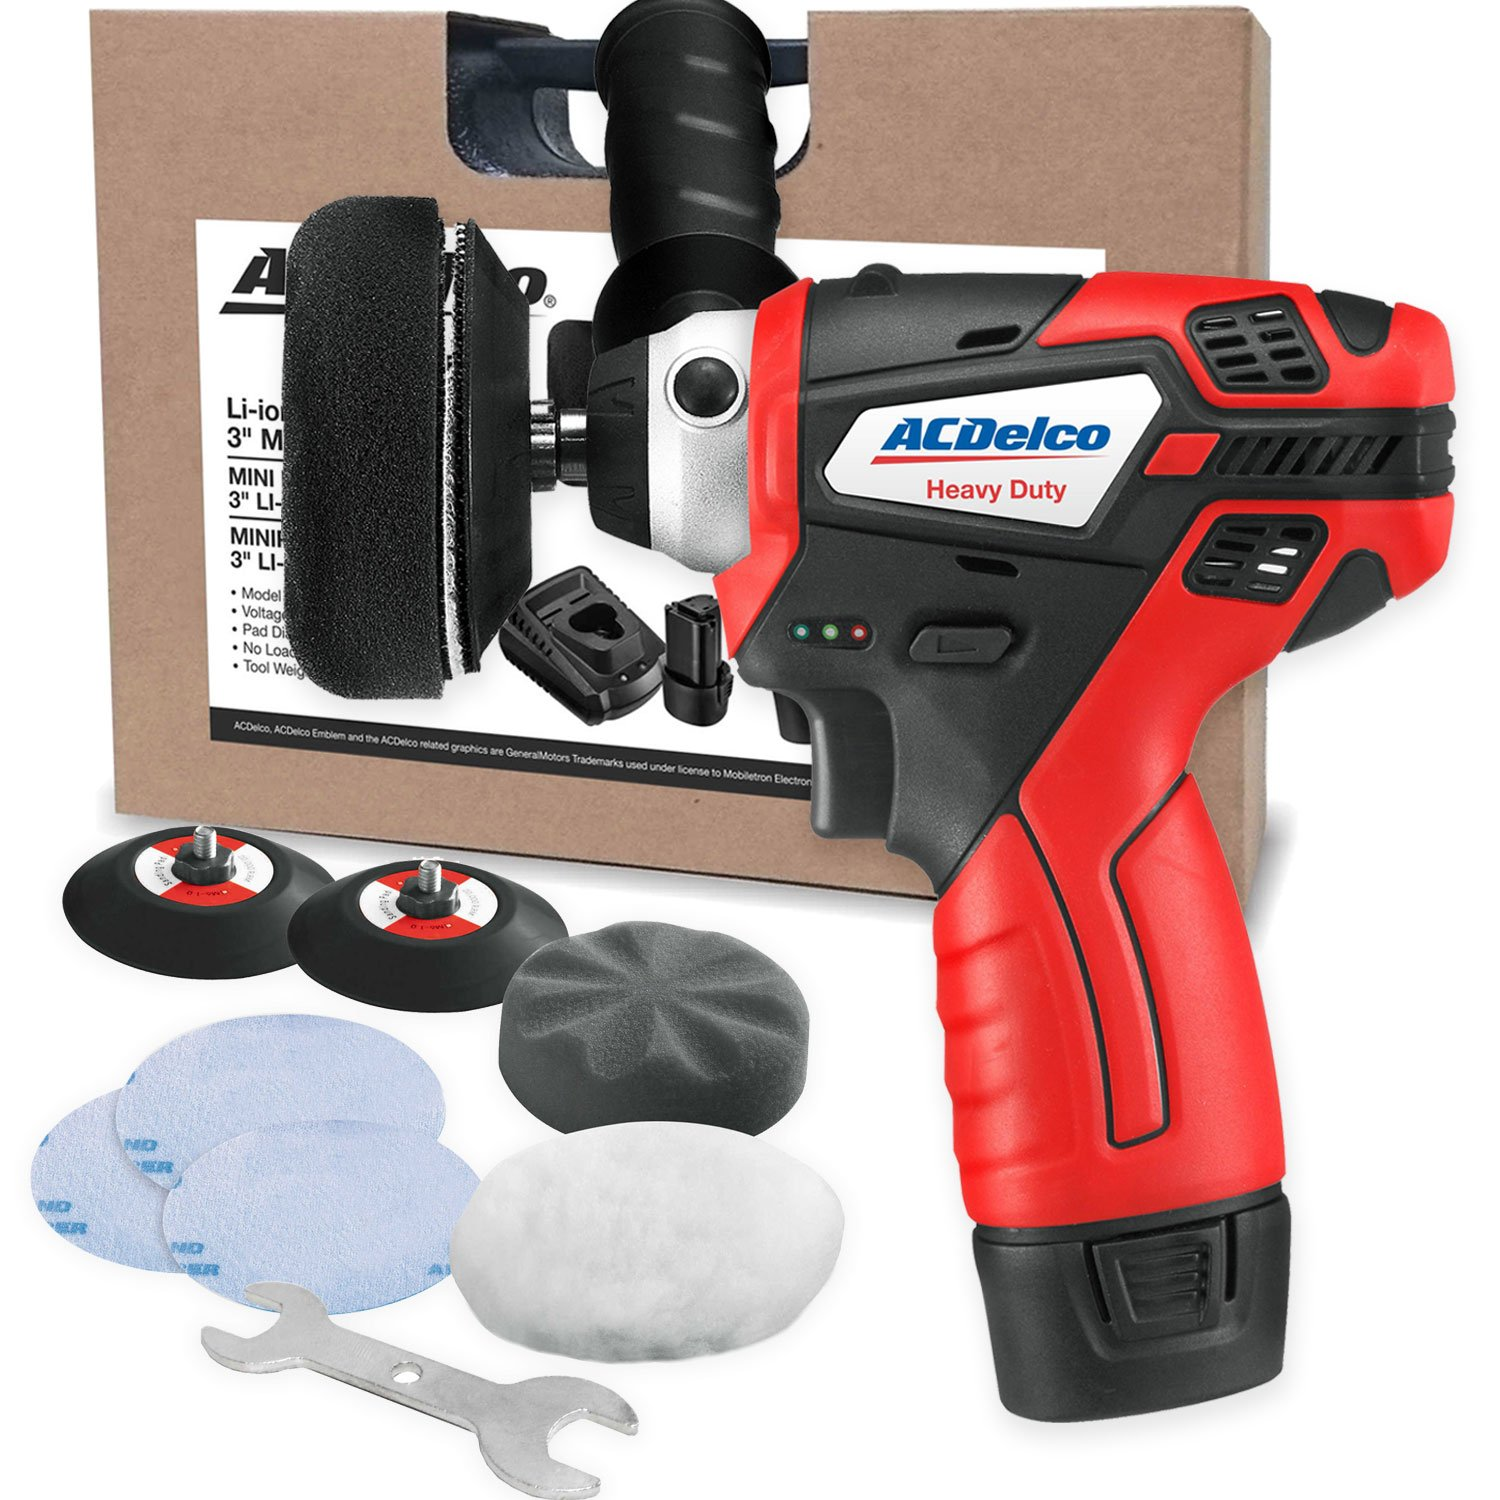 """ACDelco G12 Series 12V Cordless 3"""" Mini Polisher Tool Set with 2 Li-ion Batteries, Charger, and Accessory Kit, ARS1212"""